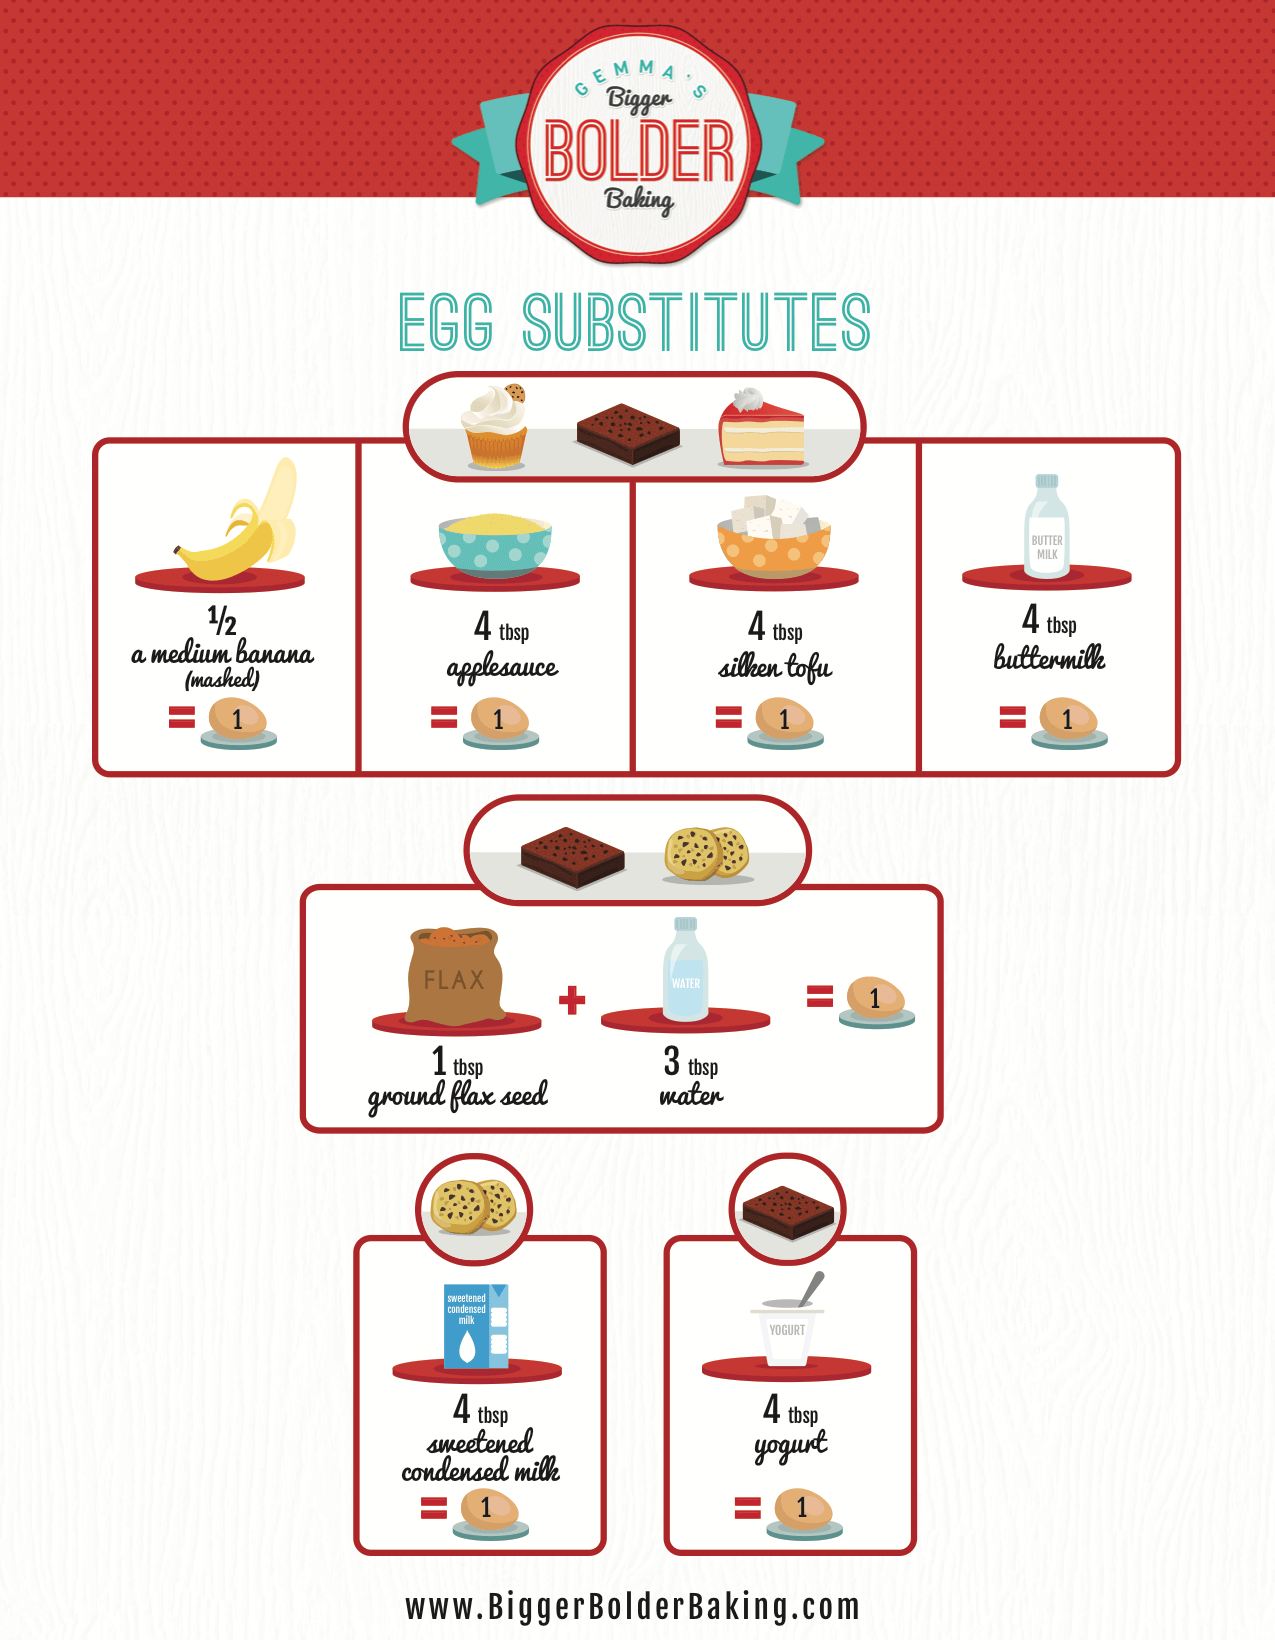 Egg Substitutes, egg substitute for baking, egg substitute for recipes, egg substitute, vegetarian baking, vegan baking, conversion chart, substitutes chart, egg substitute chart, egg free baking, egg free recipes, baking substitutes, vegetarian desserts,vegan desserts, vegetarian how to videos, how to recipes, basic baking tips, basic baking, condensed milk how to make at home, dairy free Recipes, Vegan baking, baking recipes, dessert, desserts recipes, desserts, easy desserts, quick easy desserts, best desserts, best ever desserts, simple desserts, simple recipes, recieps, baking recieps, how to make, how to bake, affordable recipes, Gemma Stafford, Bigger Bolder Baking, bold baking, bold bakers, bold recipes, bold desserts, desserts to make, quick recipes